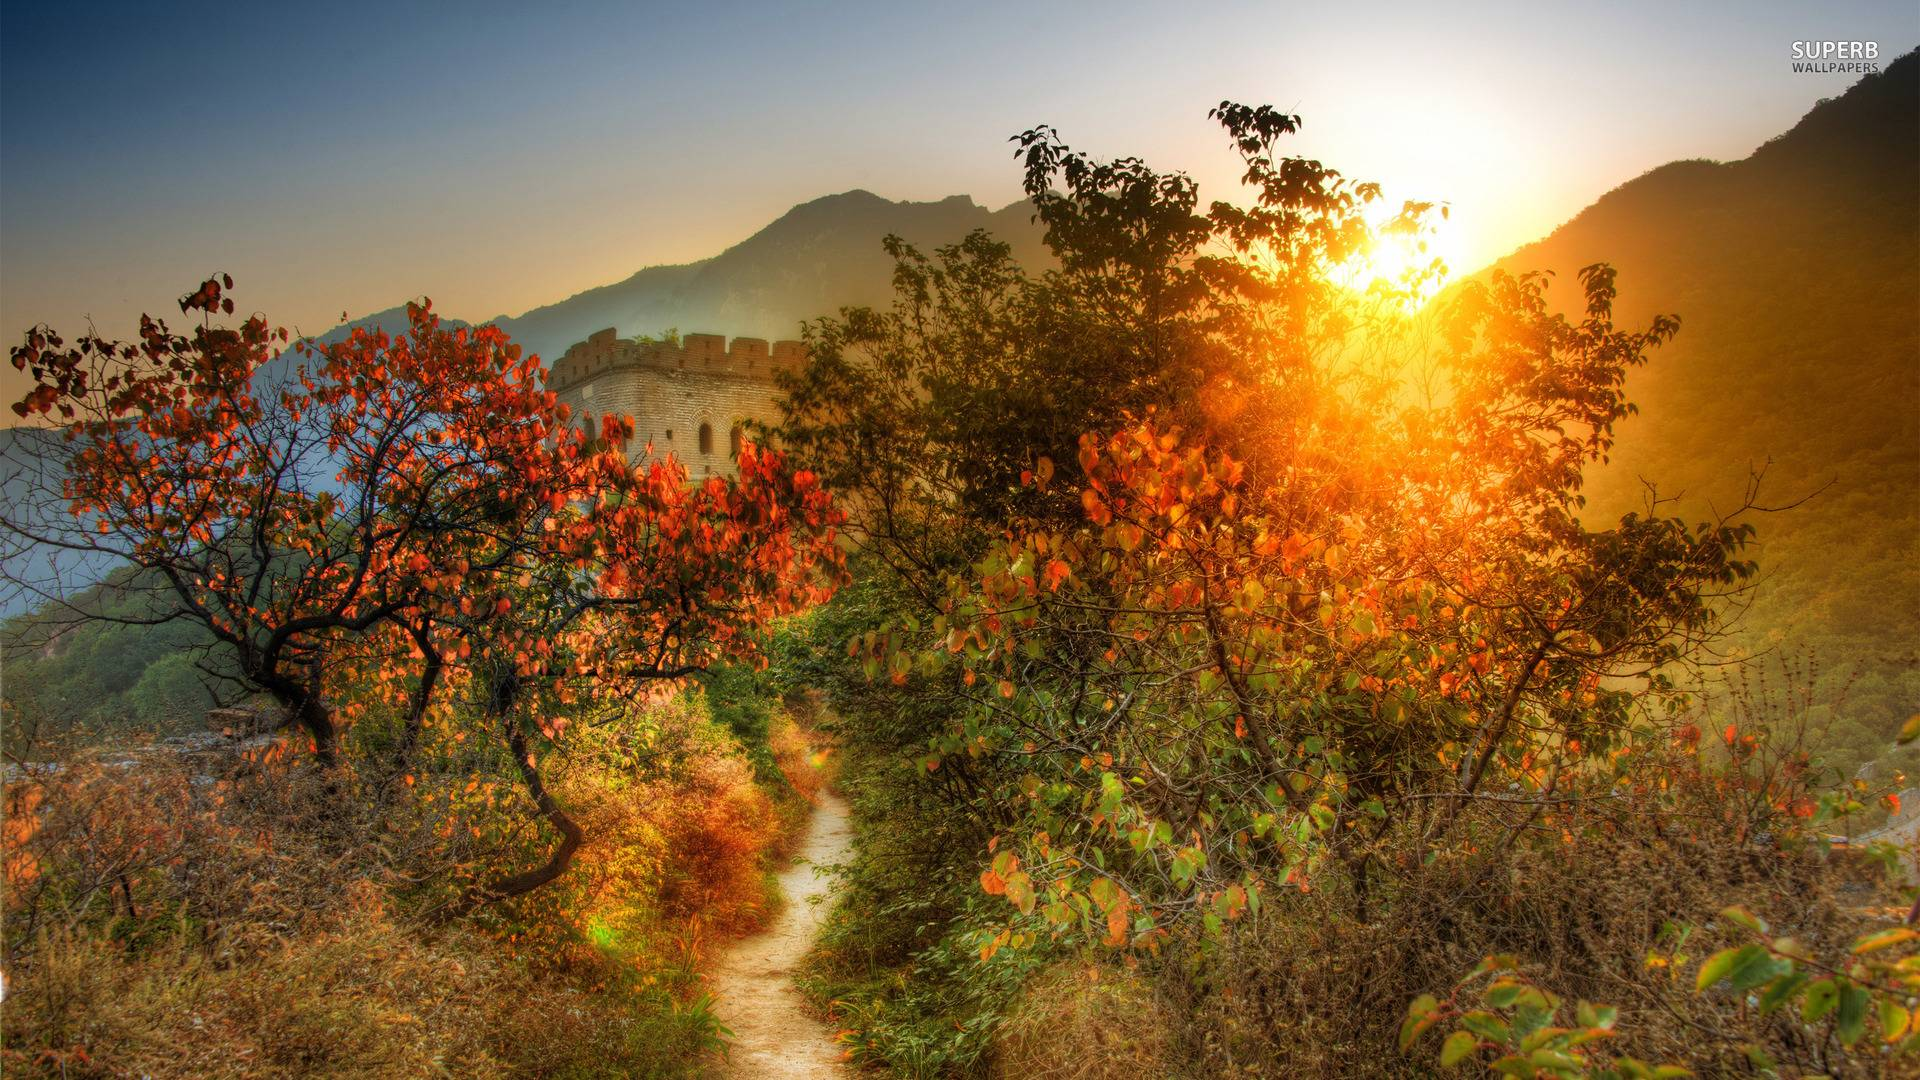 The great wall of china wallpapers wallpaper cave overgrown path to the great wall of china wallpaper world voltagebd Gallery